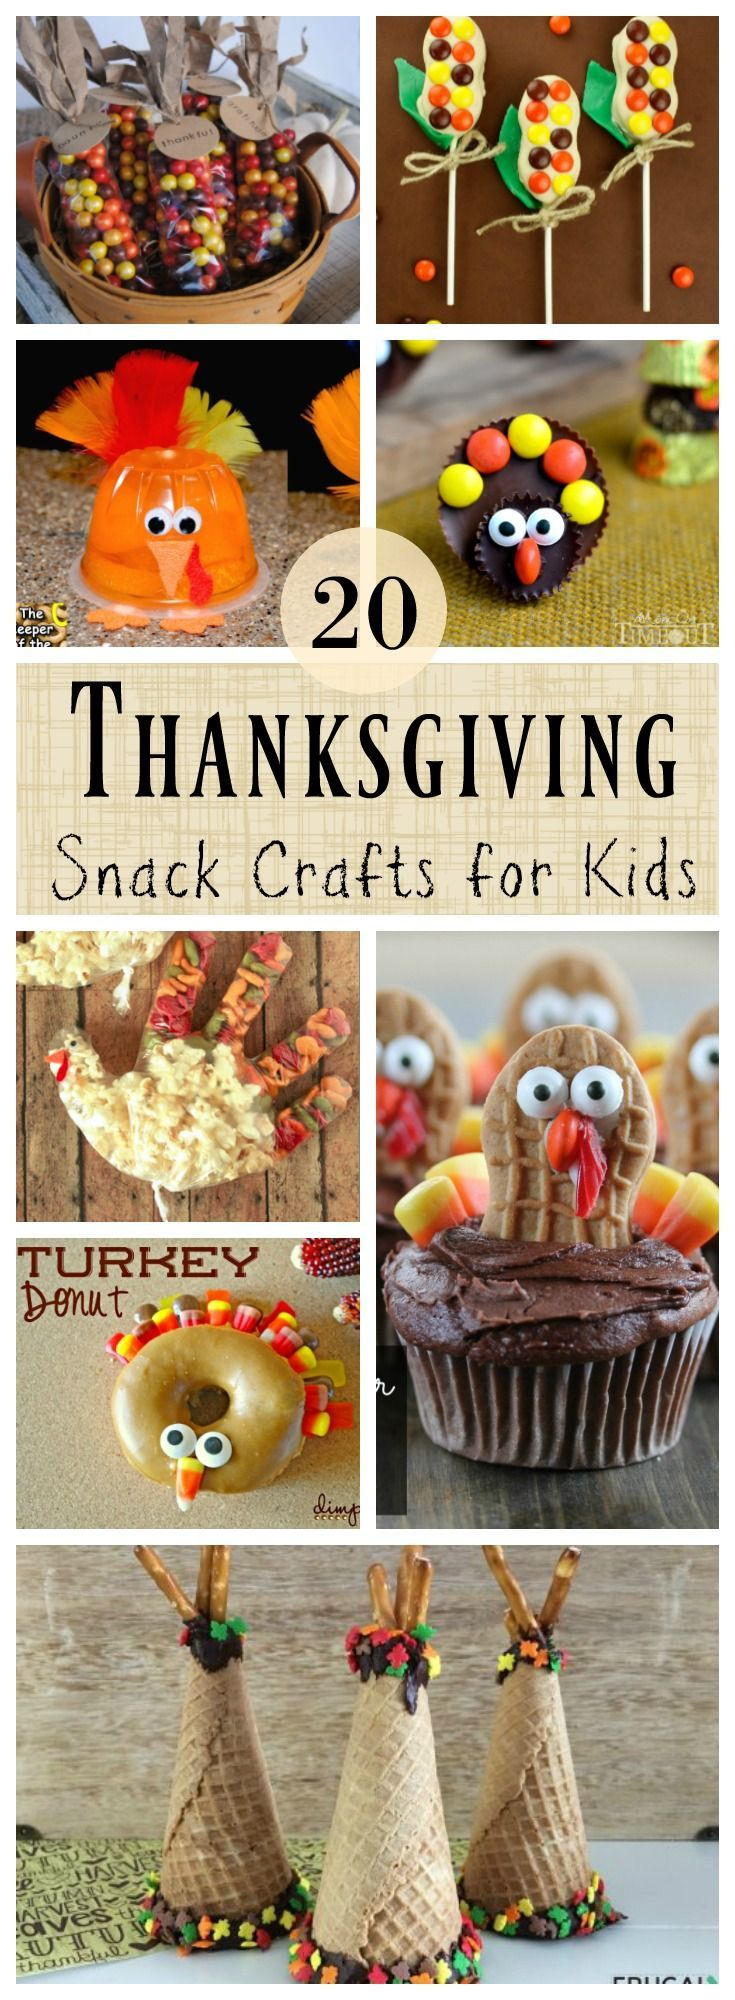 Food faith amp design thanksgiving goodies - 20 Edible Thanksgiving Crafts For Kids